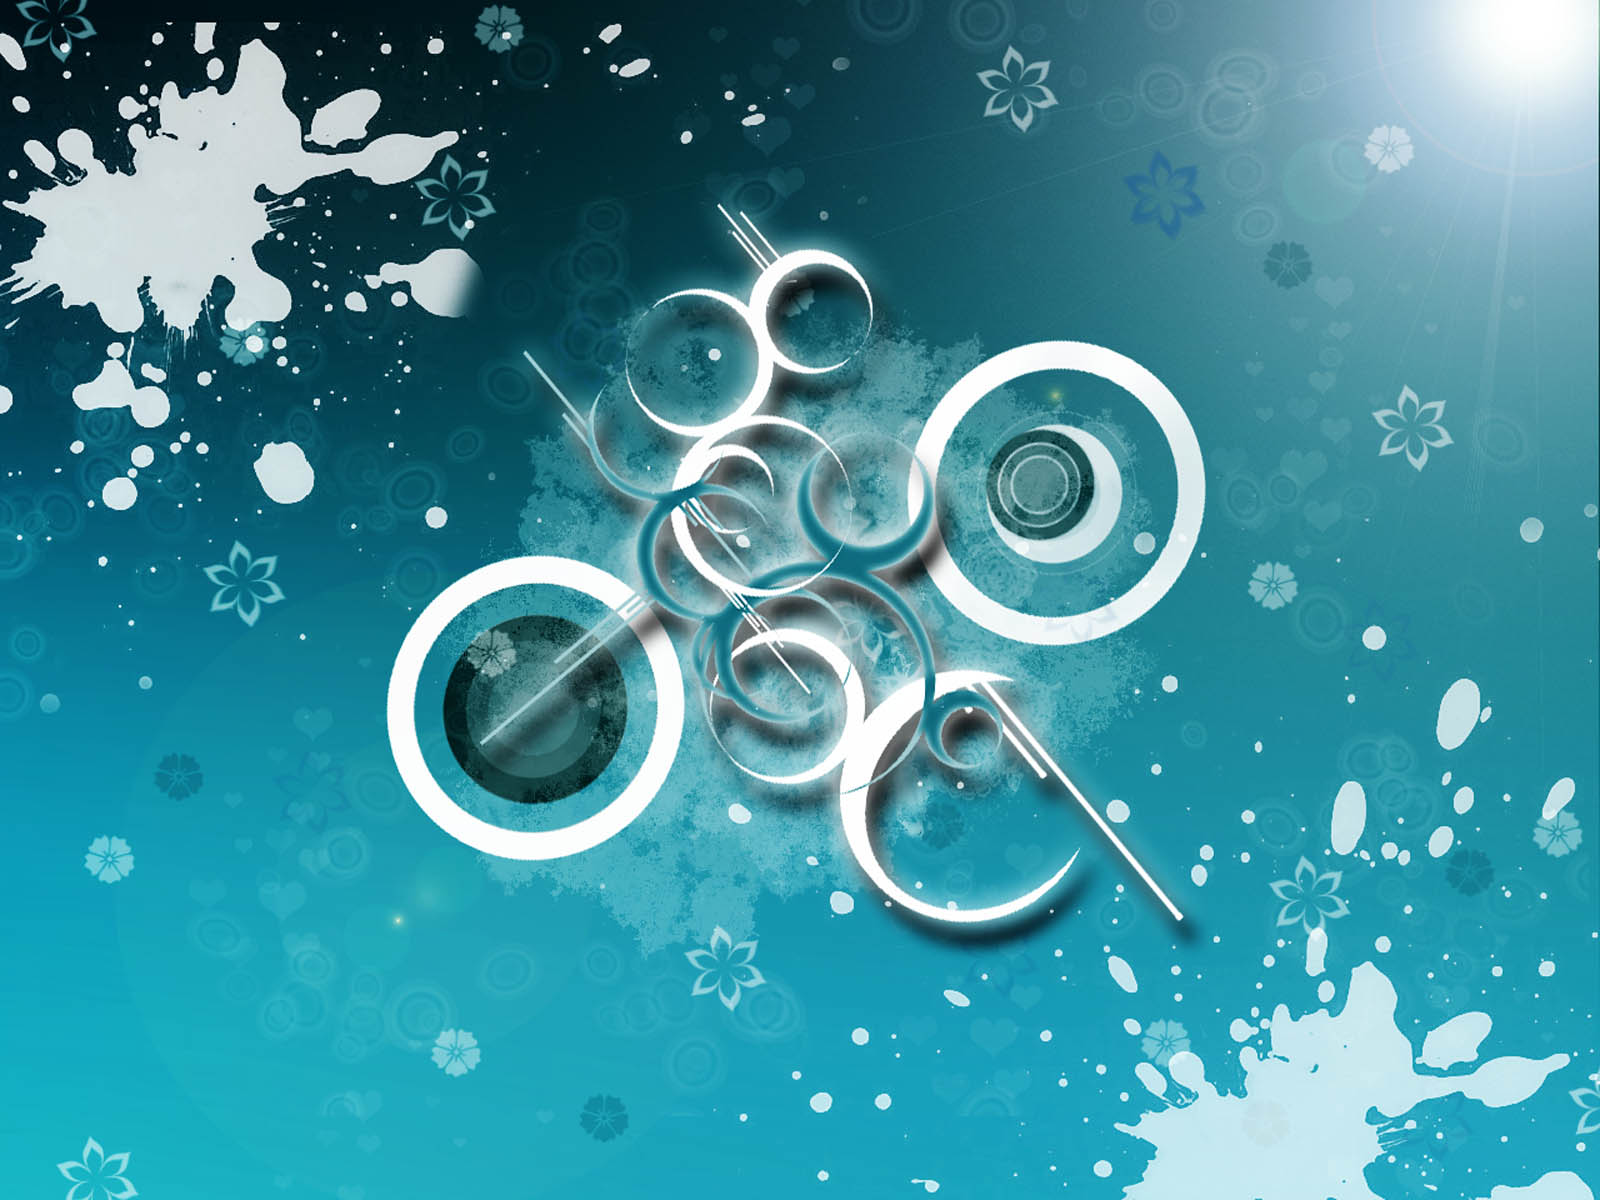 wallpapers: Abstract Design Wallpapers